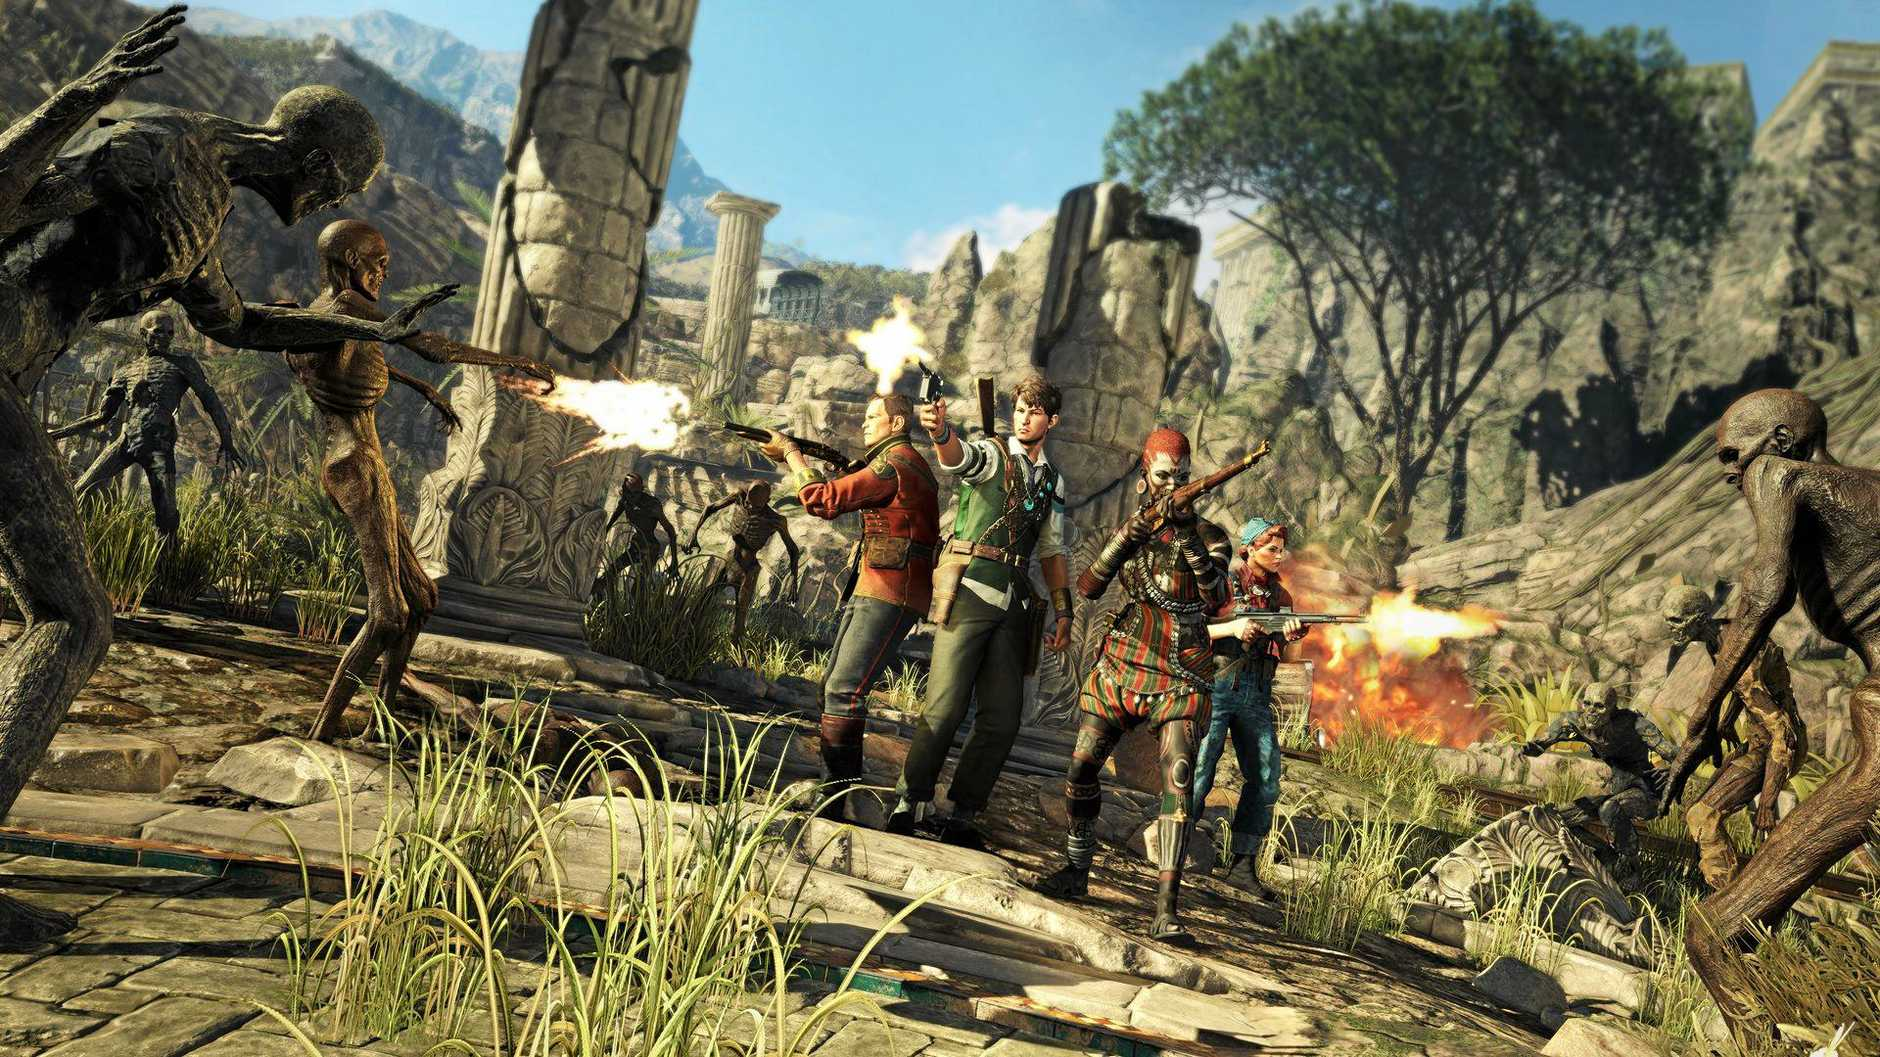 GOOD FUN: Strange Brigade was developed by Rebellion for PC, PlayStation 4 and Xbox One.